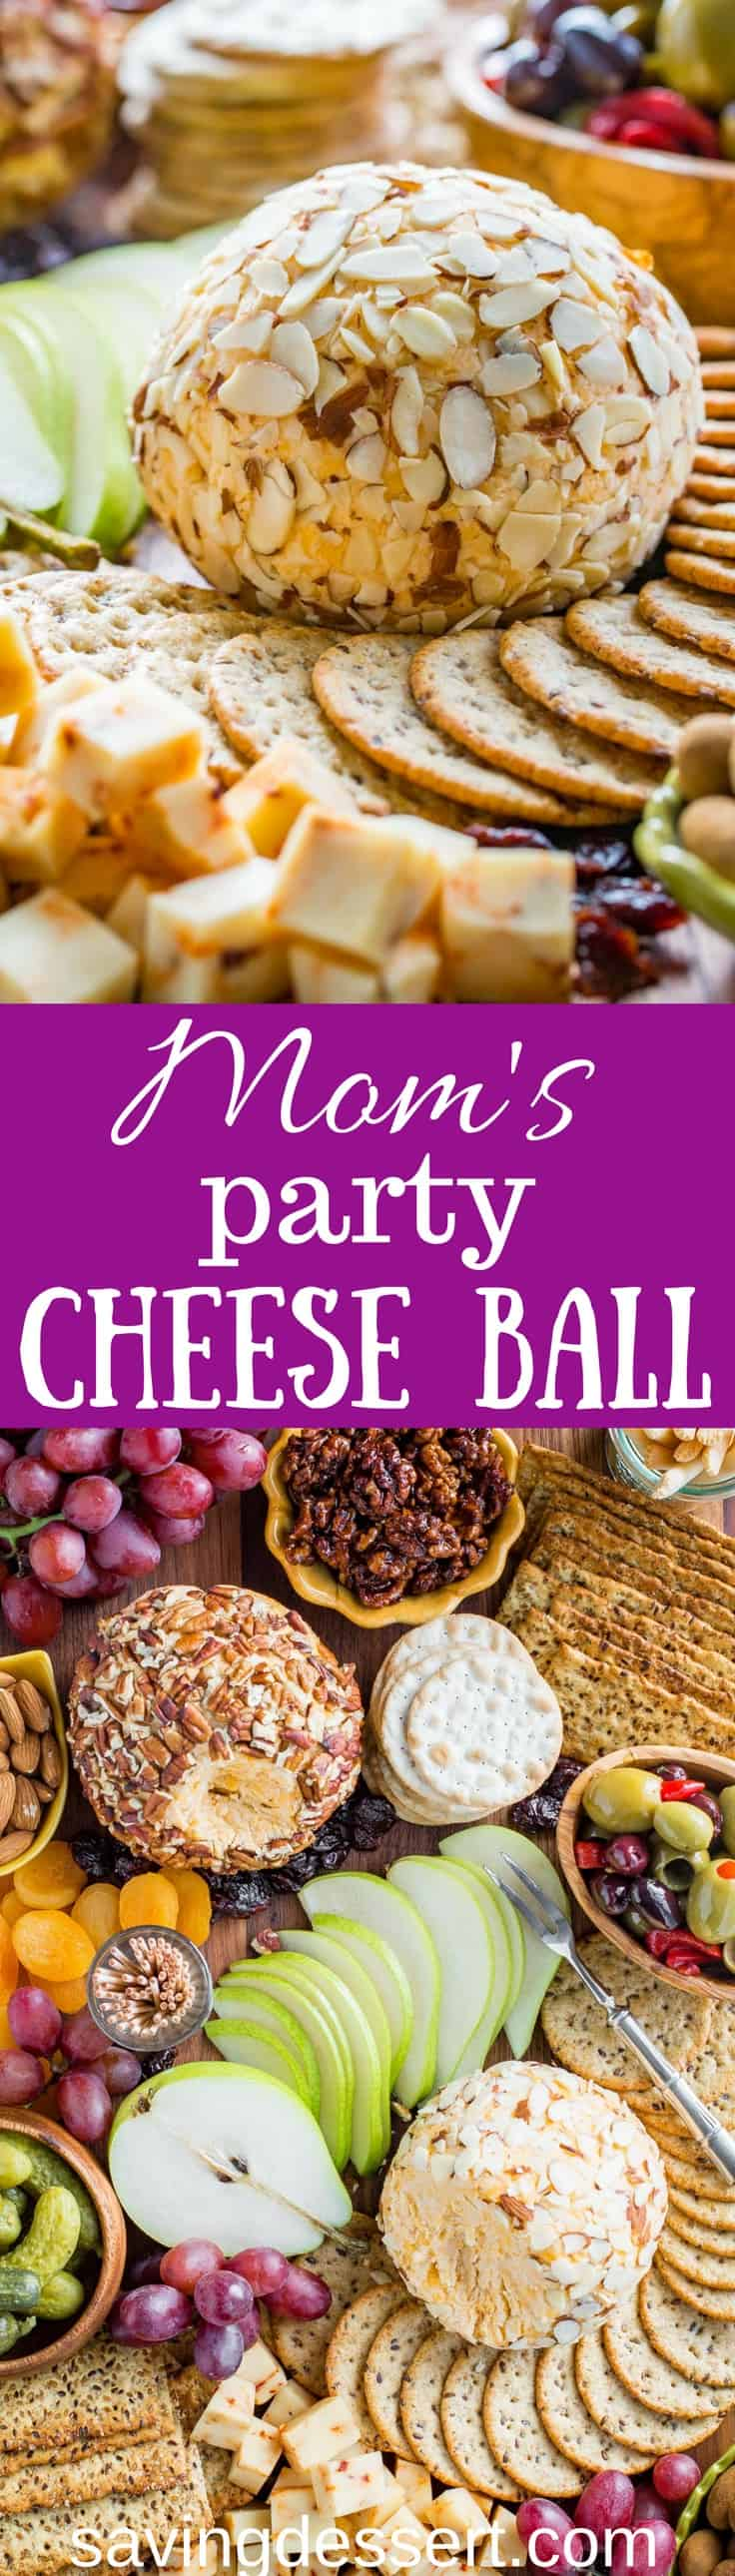 Mom's Party Cheeseball ~ every party needs an easy and delicious cheese ball made with cream cheese, mild and sharp cheddar cheese and a few spices. An easy make ahead appetizer that holds up wonderfully for hours and is great served with crackers, bread, fruit and nuts. www.savingdessert.com #cheeseball #appetizer #savingroomfordessert #partyappetizer